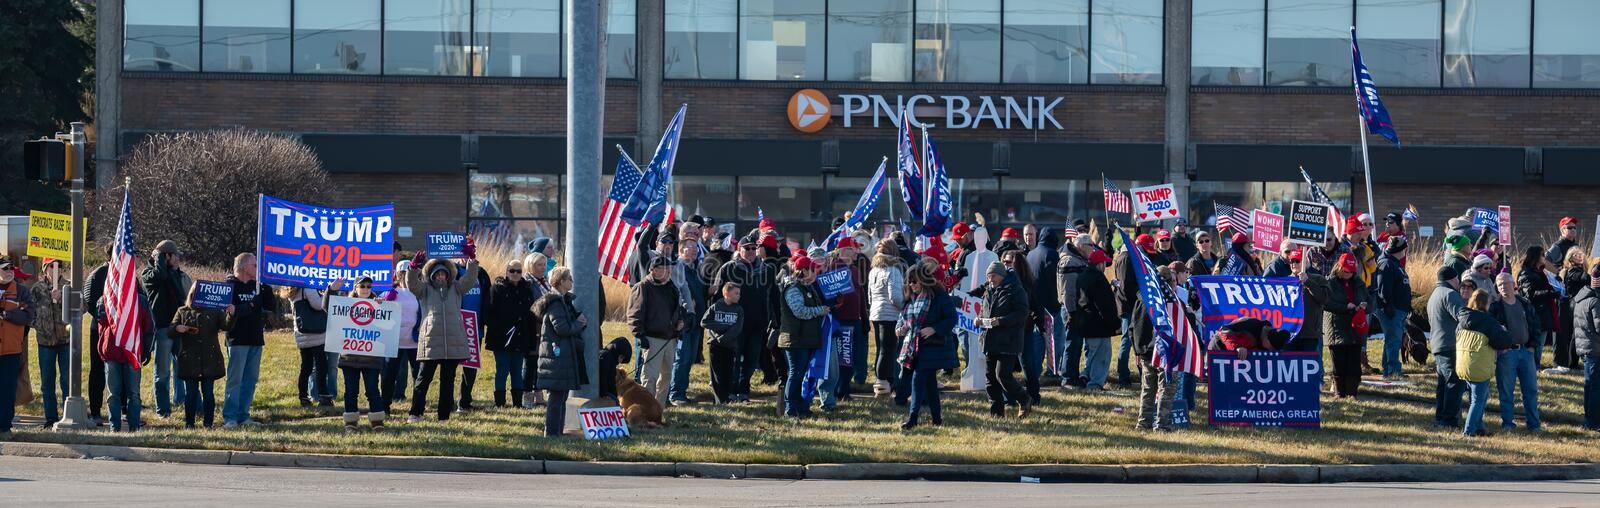 Pro-Trump Rally at Route 30 Lincoln Highway and Lagrange Rd Route 45. Frankfort, Illinois royalty free stock photos